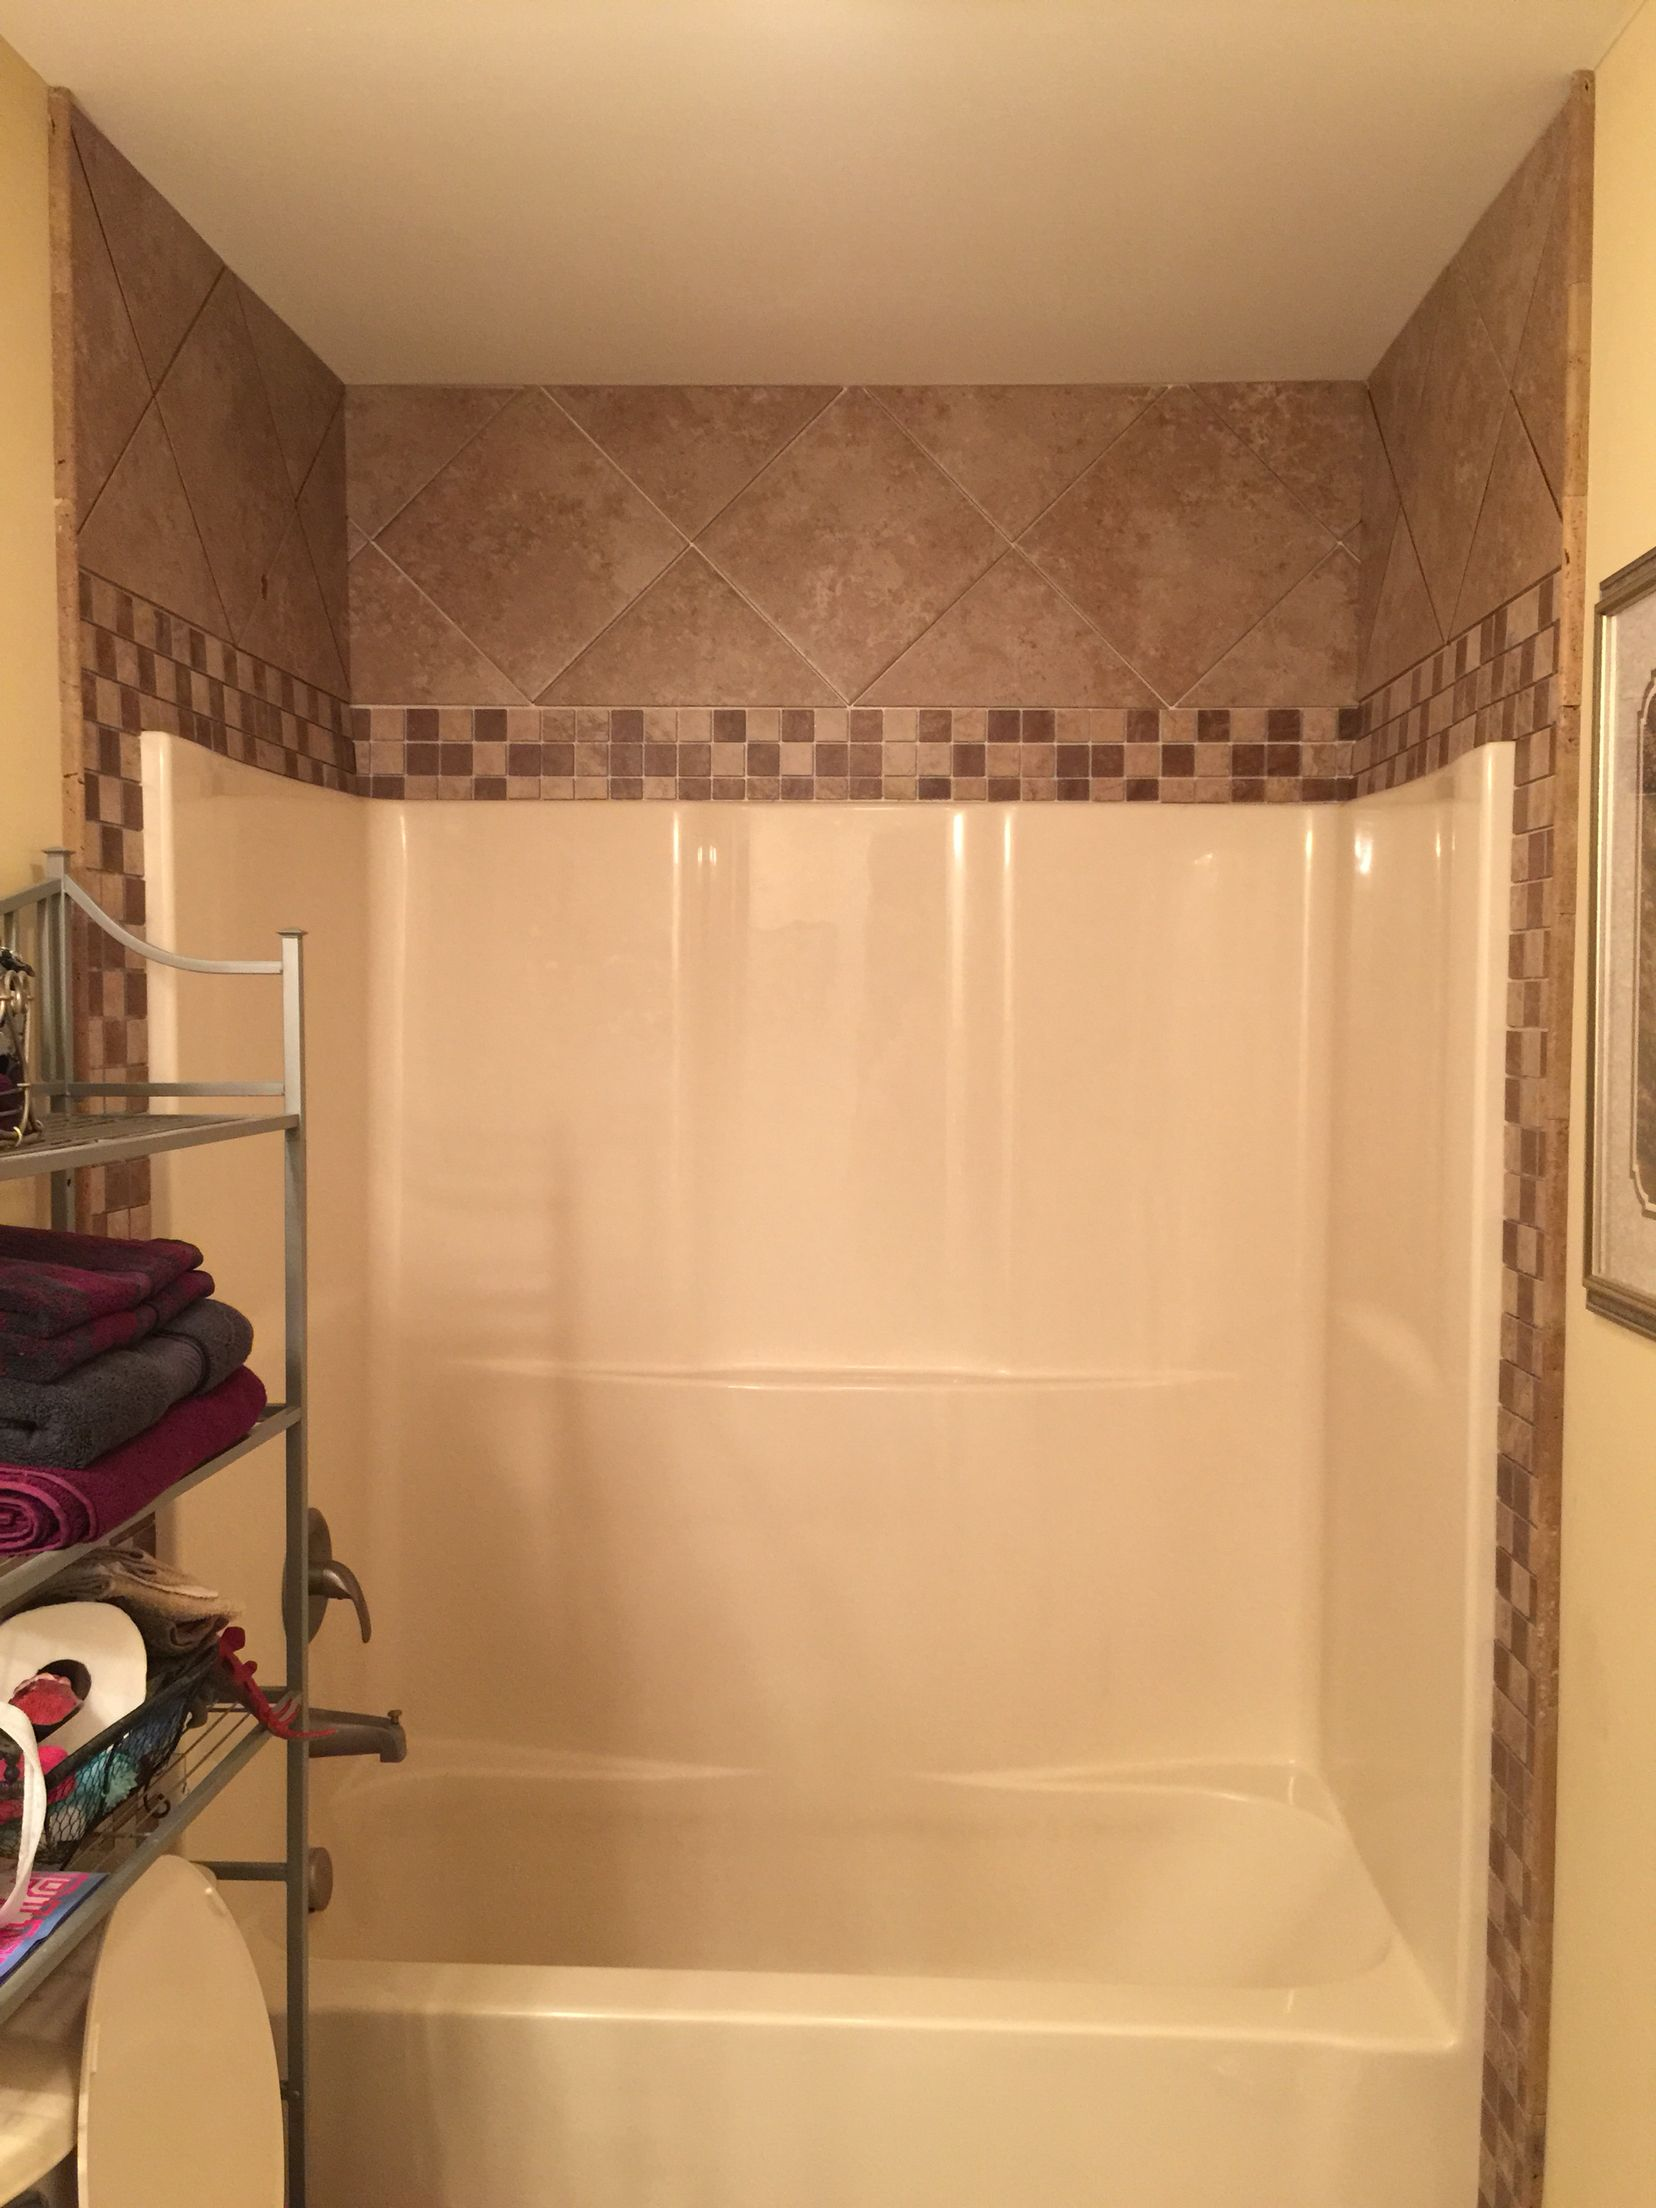 How to build a tiled shower tub - Tile Around Fiberglass Shower Tub